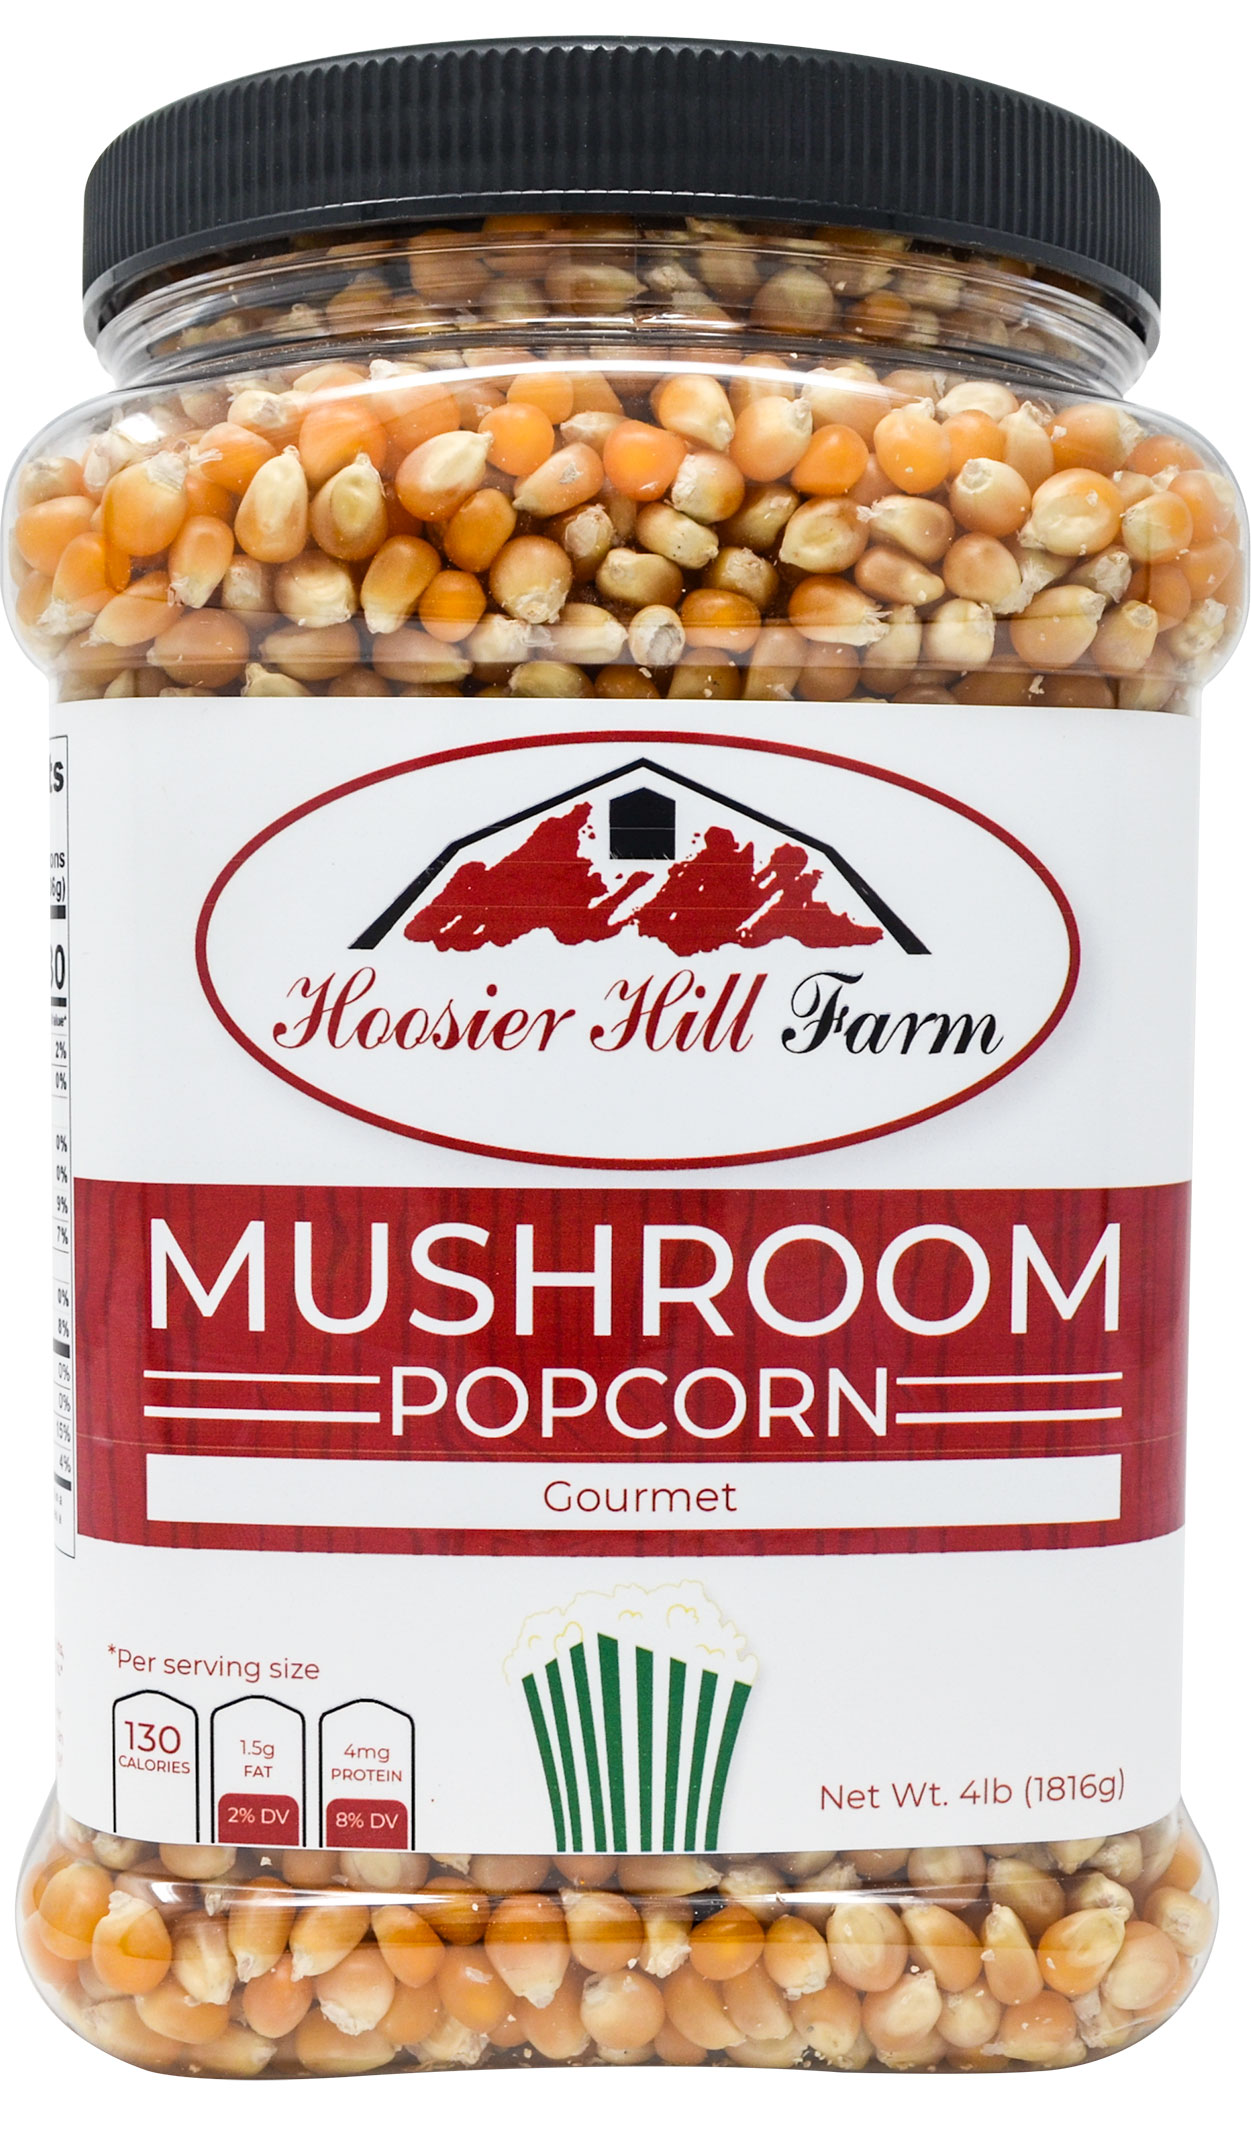 Hoosier Hill Farm Gourmet Mushroom, Popcorn Lovers 4 lb. Jar.